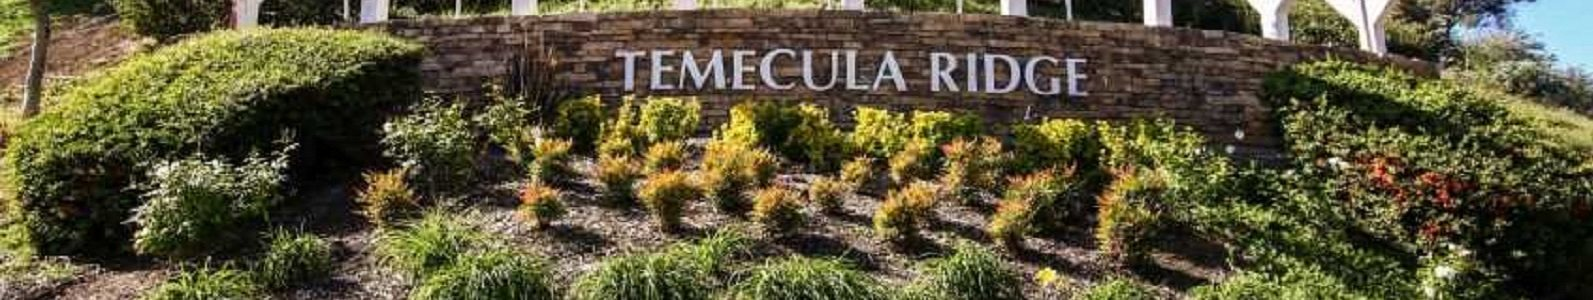 Temecula Ridge Apartments - Front Monument